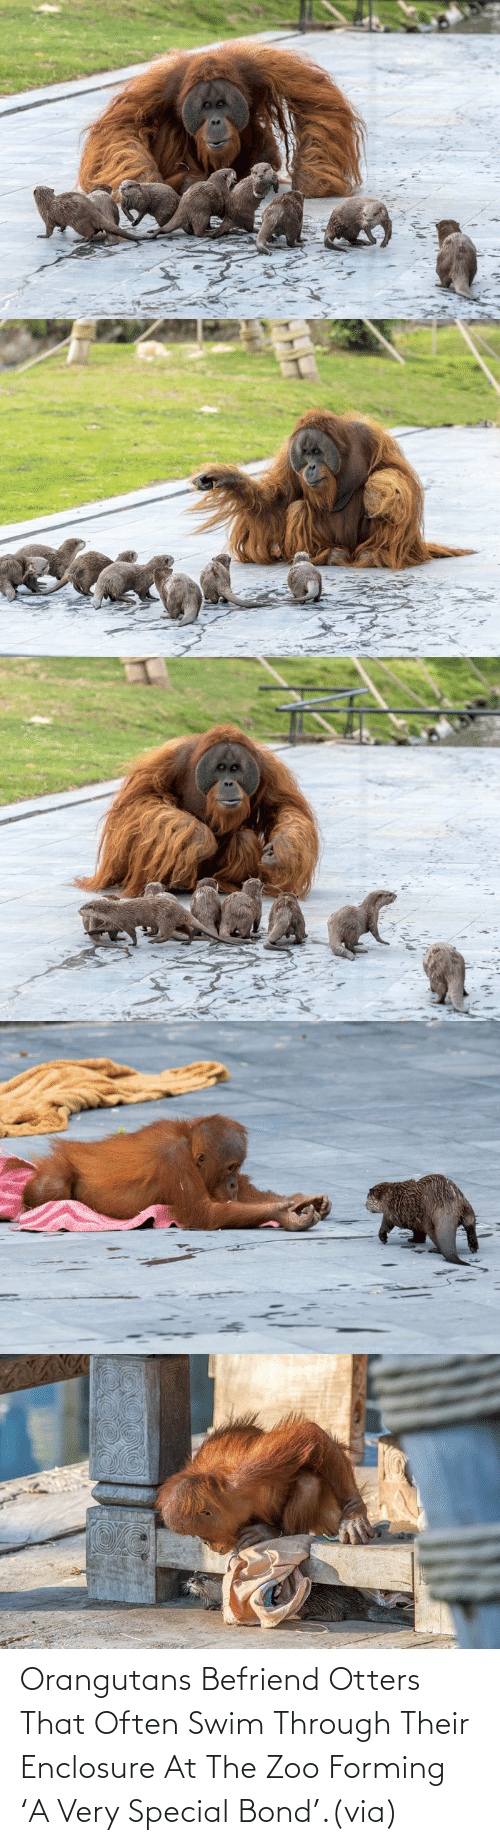 Often: Orangutans Befriend Otters That Often Swim Through Their Enclosure At The Zoo Forming 'A Very Special Bond'.(via)